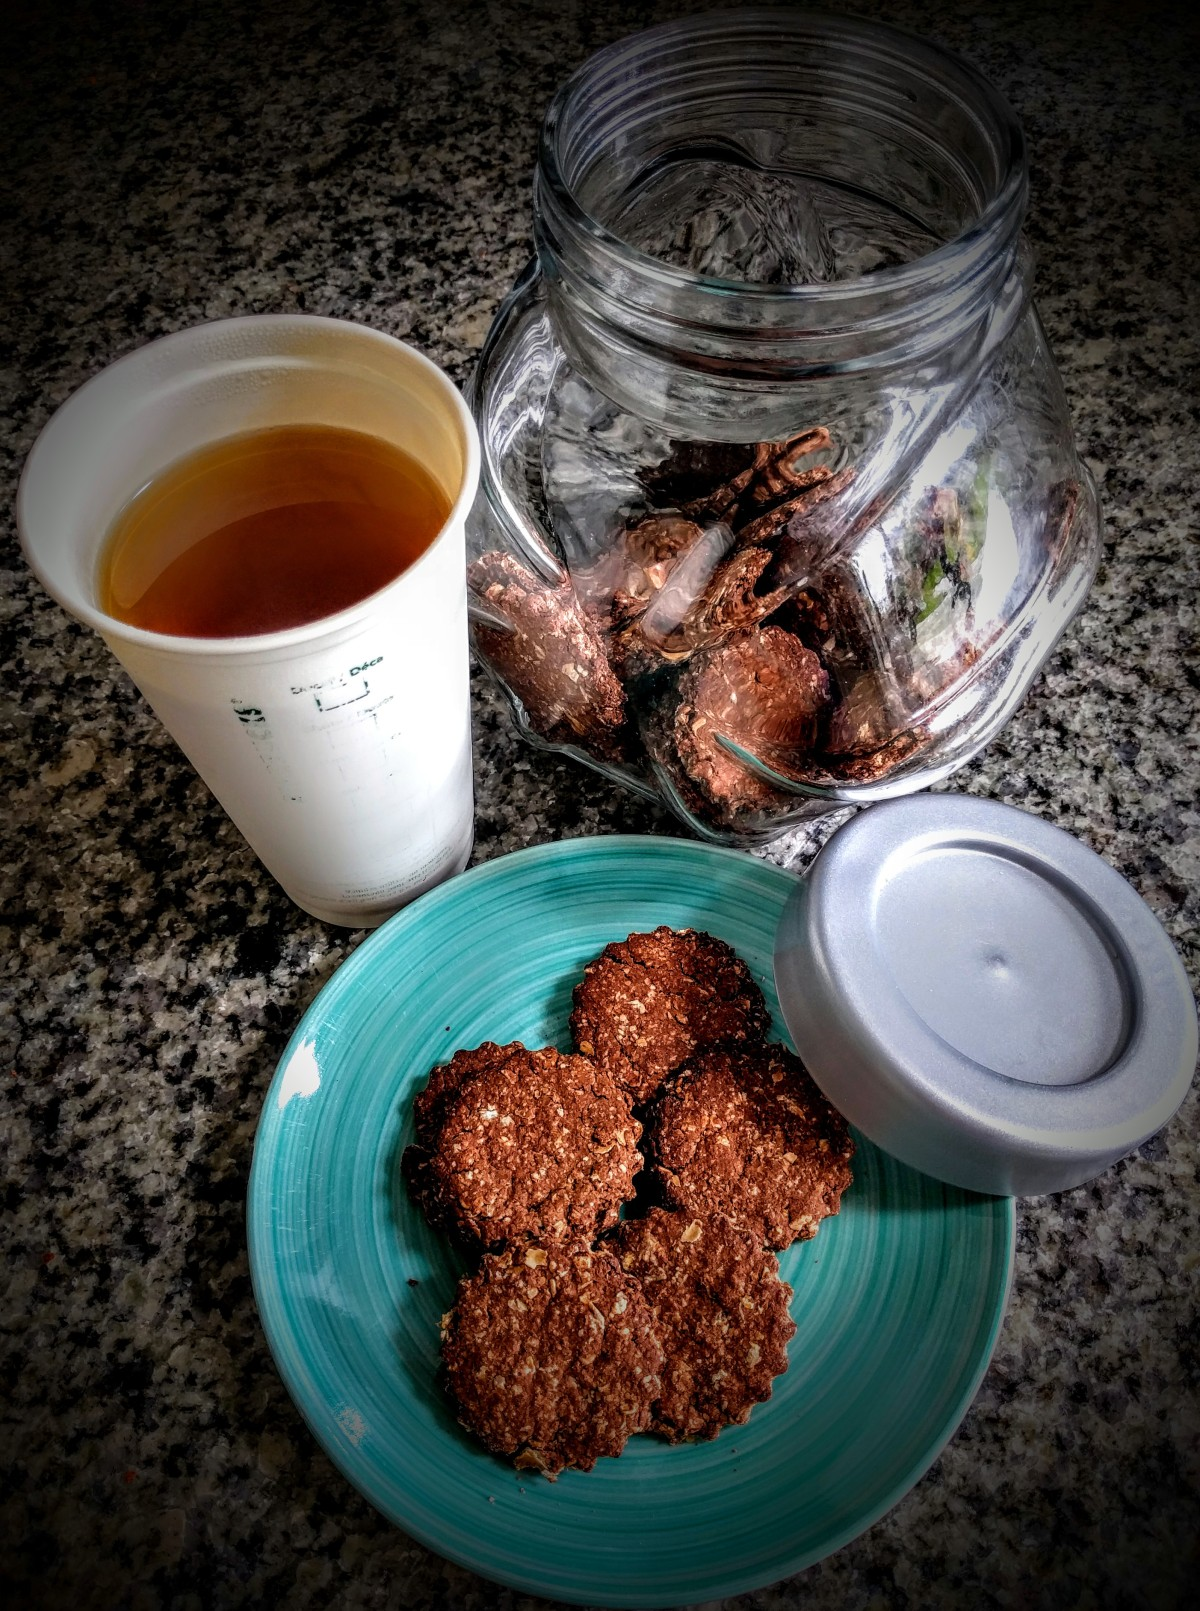 Chocolate and Ginger Digestives